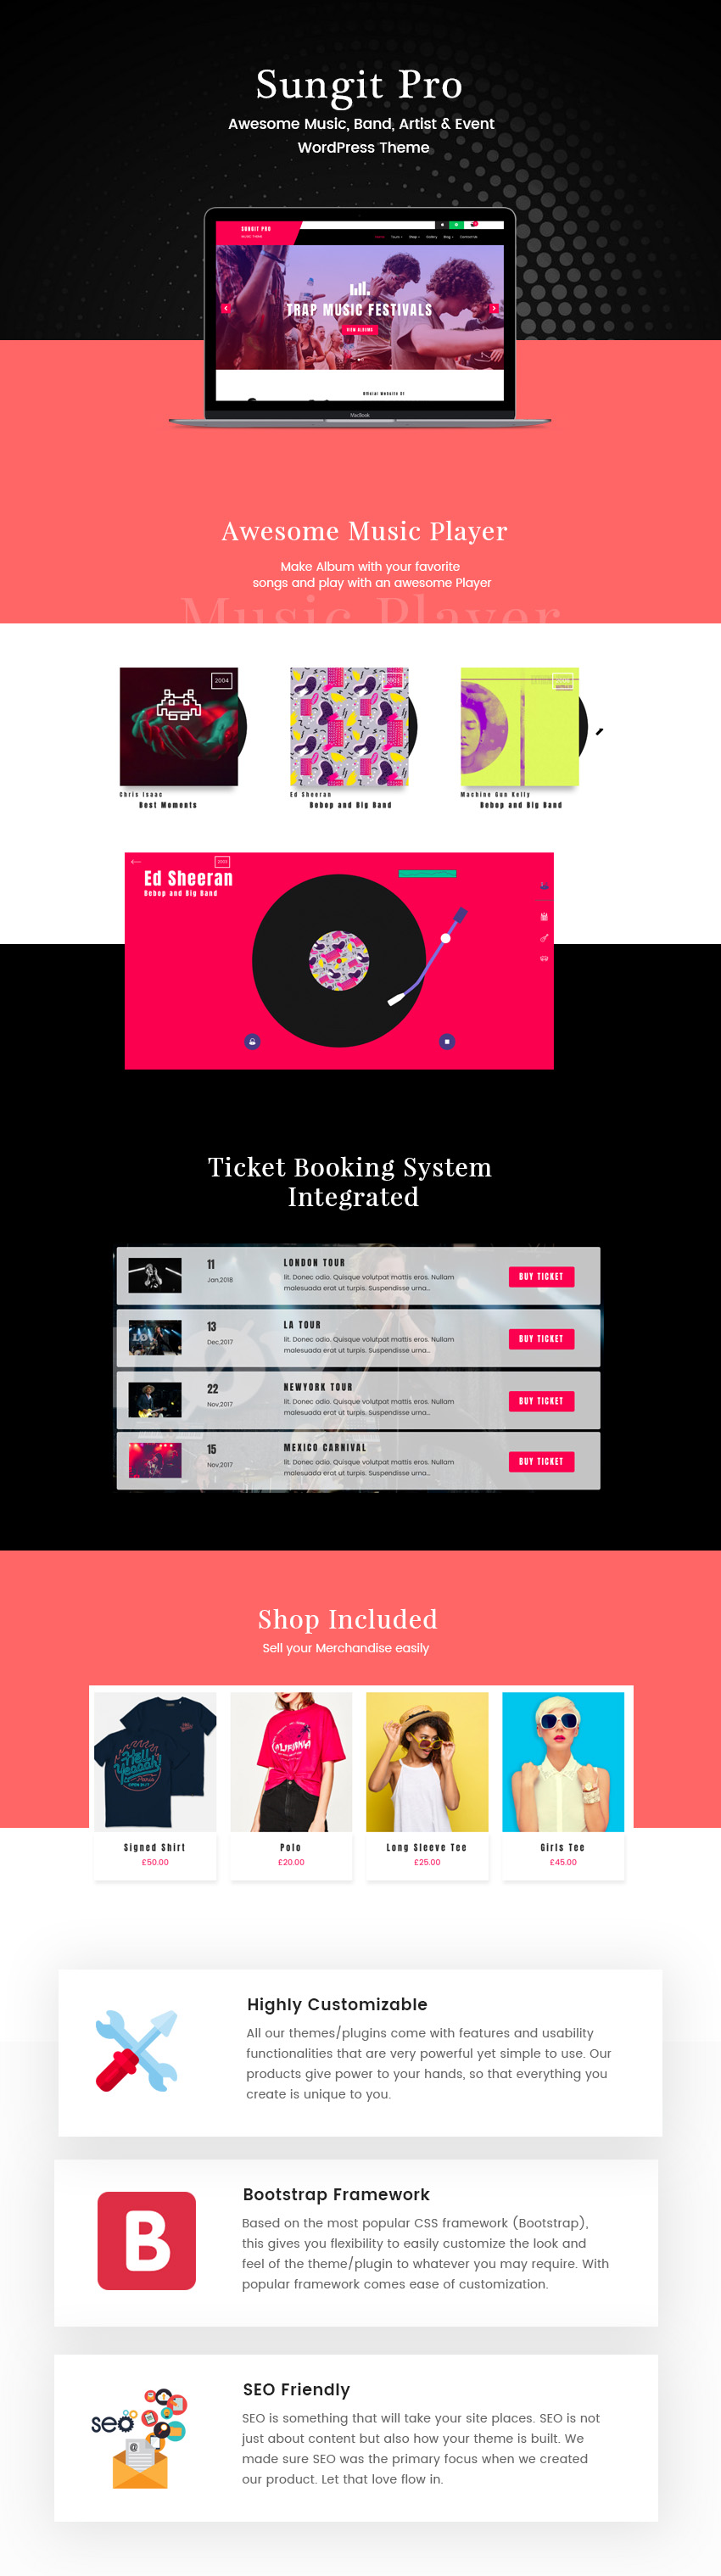 Premium Music WordPress Theme - Sungit - Yudlee Themes